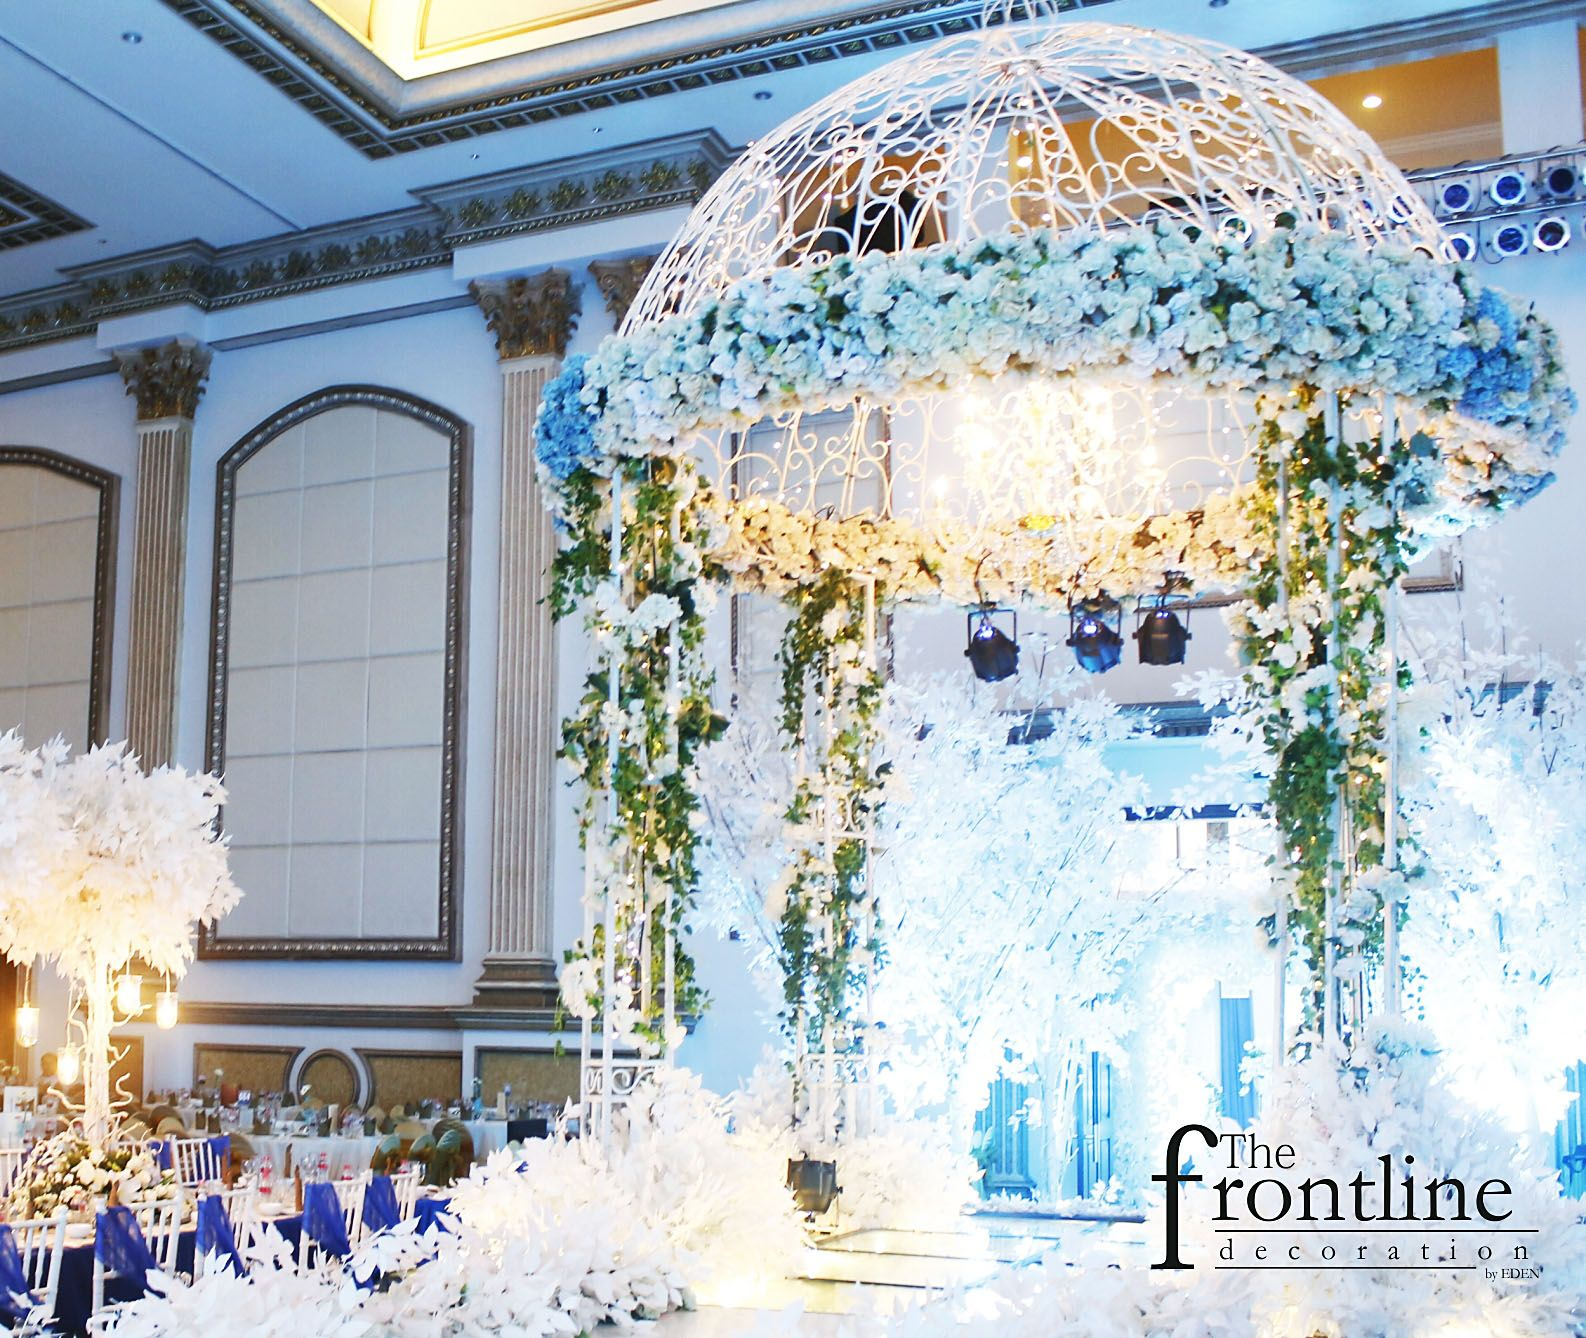 The wedding of daniel marcellin grand royal surabaya decorated the wedding of daniel marcellin grand royal surabaya decorated by eden decoration junglespirit Choice Image